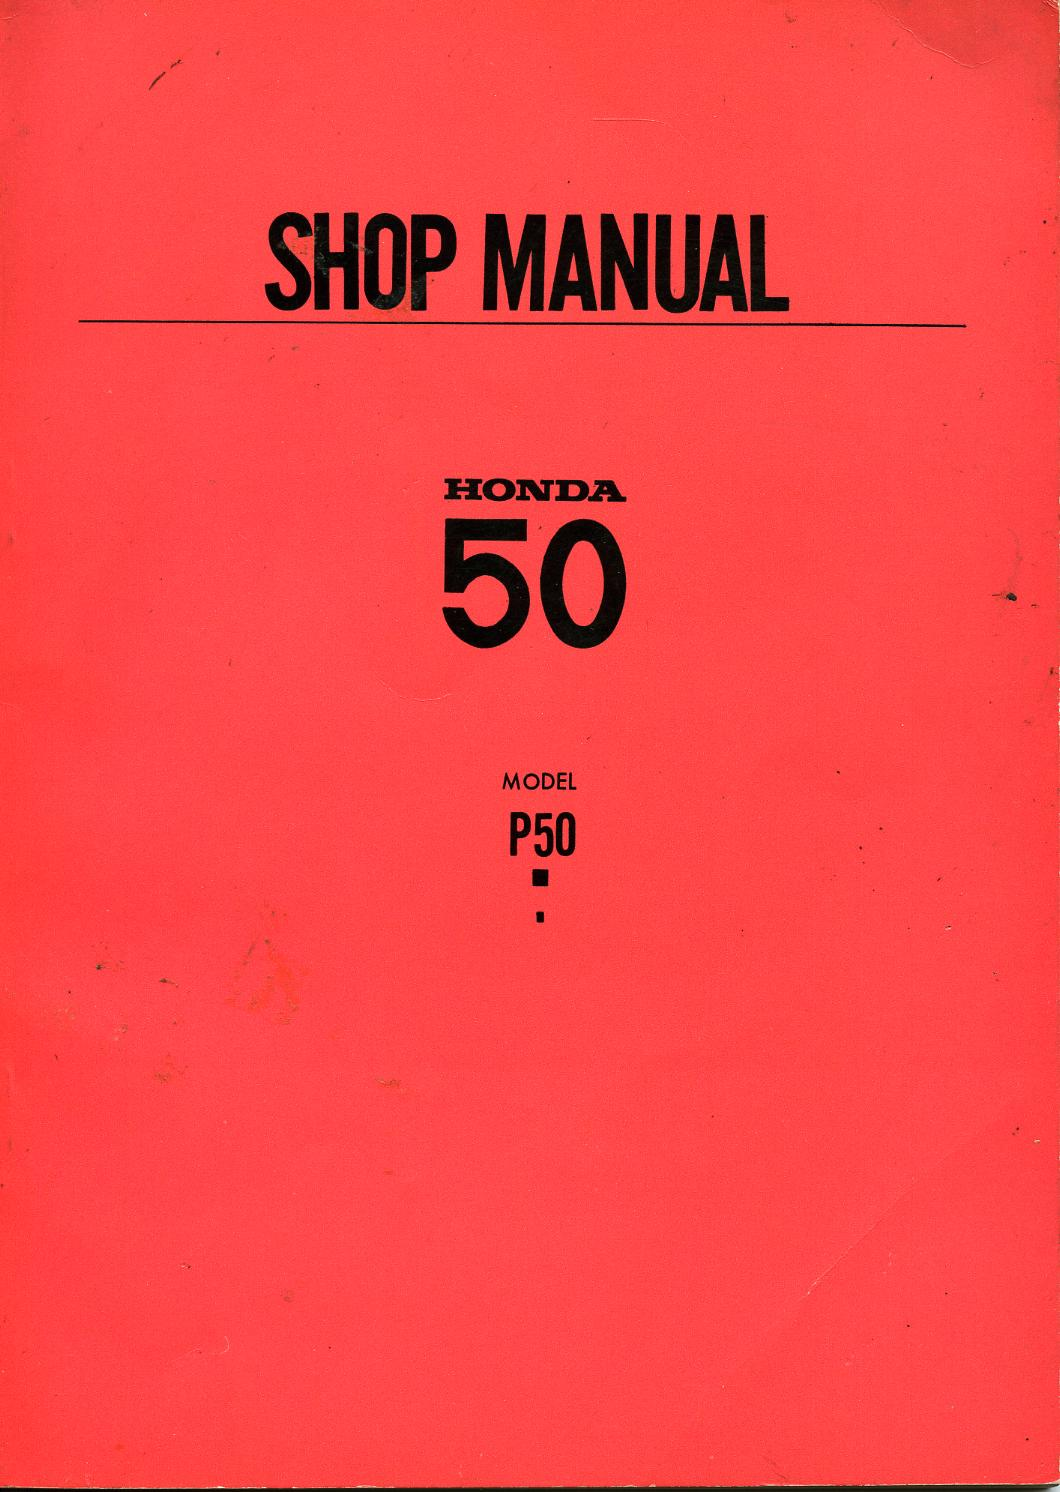 Honda P50 Shop Manual